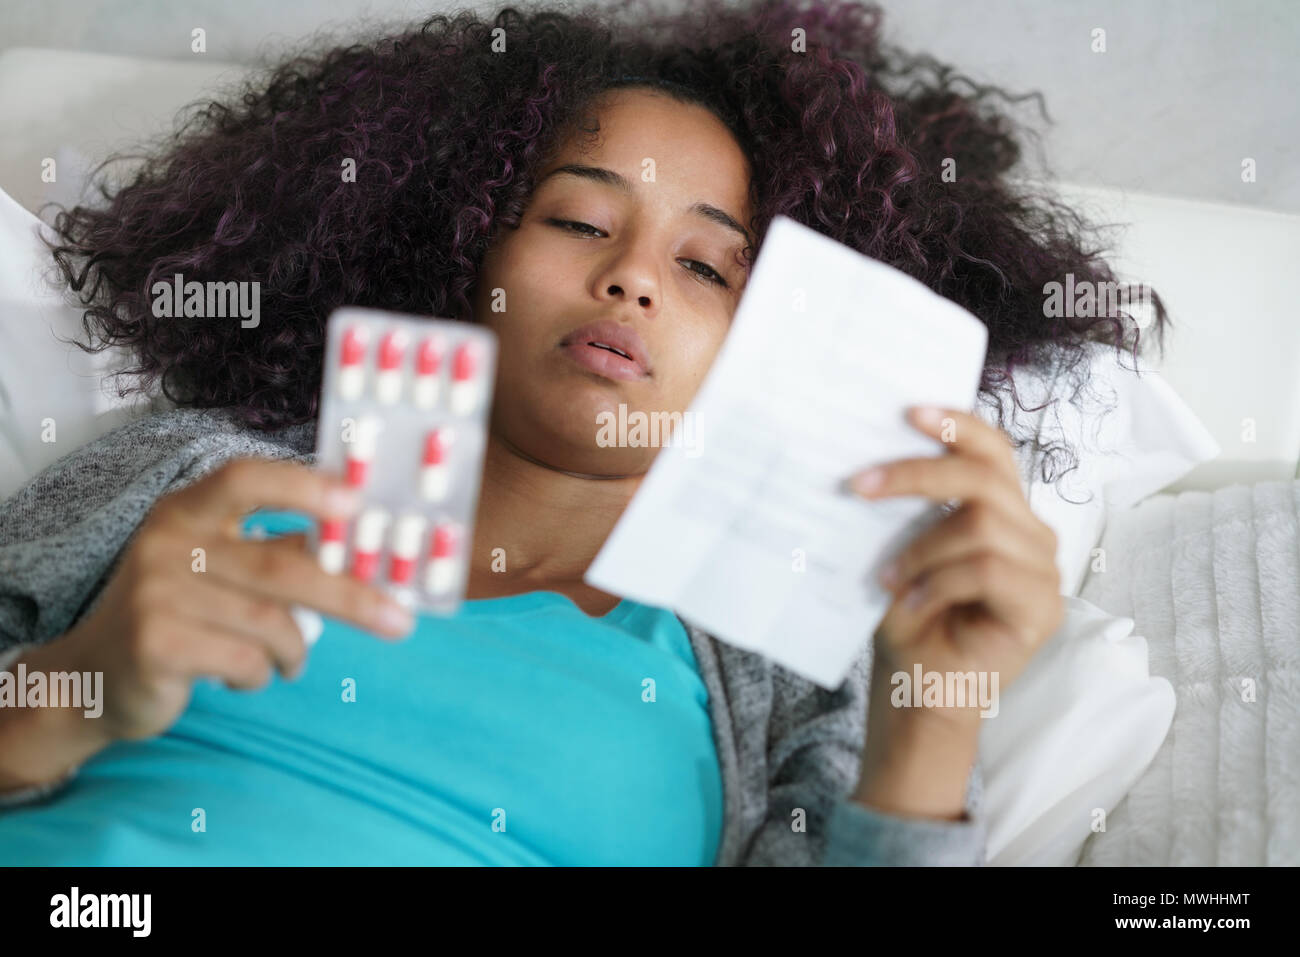 Sick african american girl with flu virus in bed at home. Ill young black woman with cold reading antibiotics prescription for illness. - Stock Image